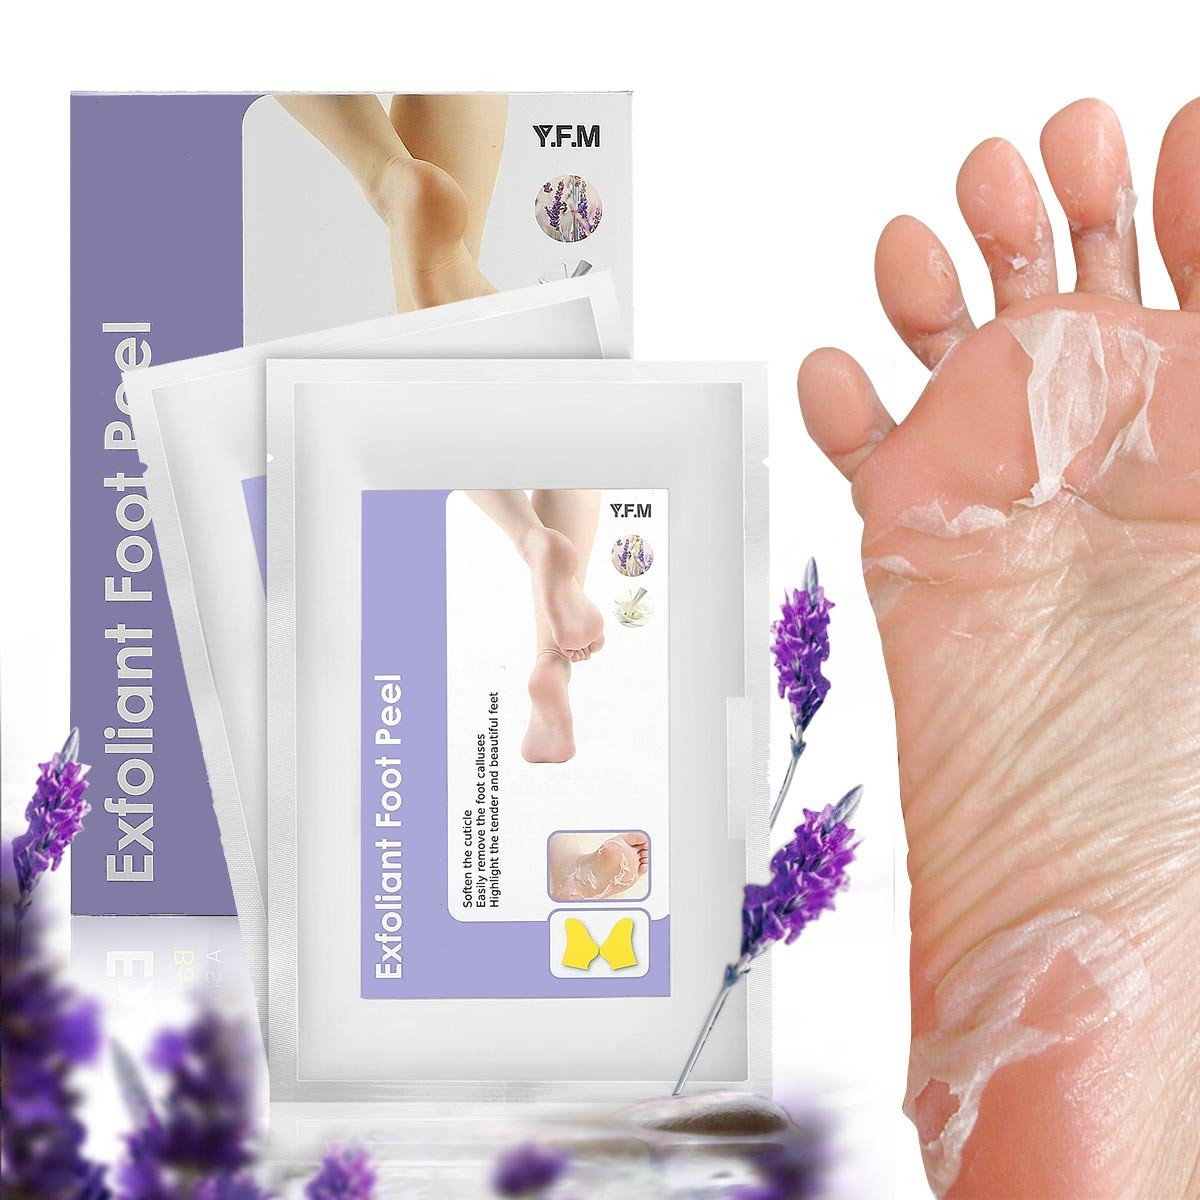 Exfoliating Foot Mask, Y.F.M 2 Pairs Mild Soften Cuticle Remove Foot Calluses Lavender Exfoliating Dry Dead Skin for Gift